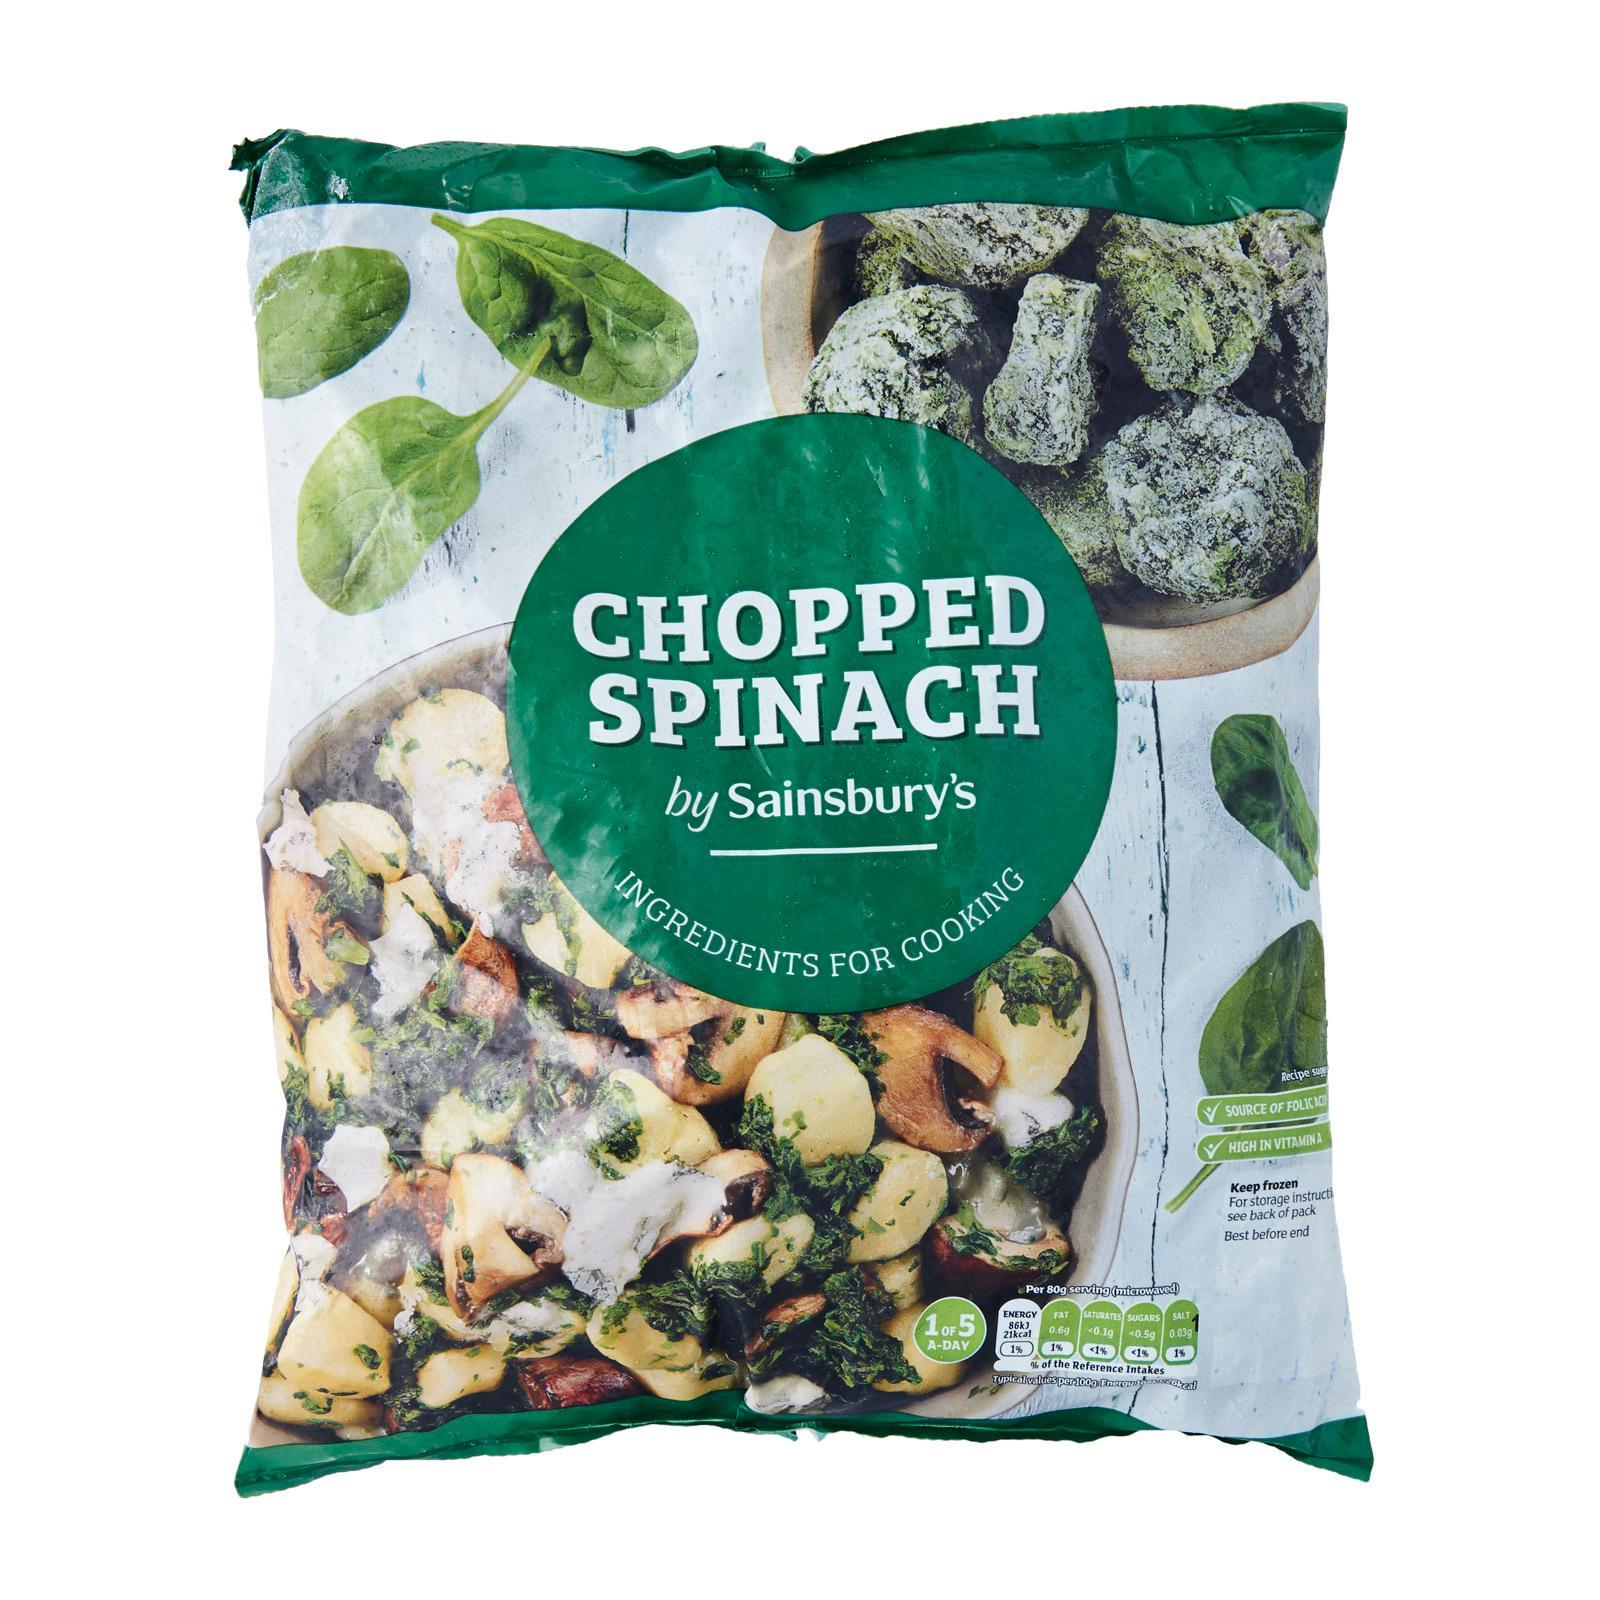 Sainsbury's Chopped Spinach - Frozen